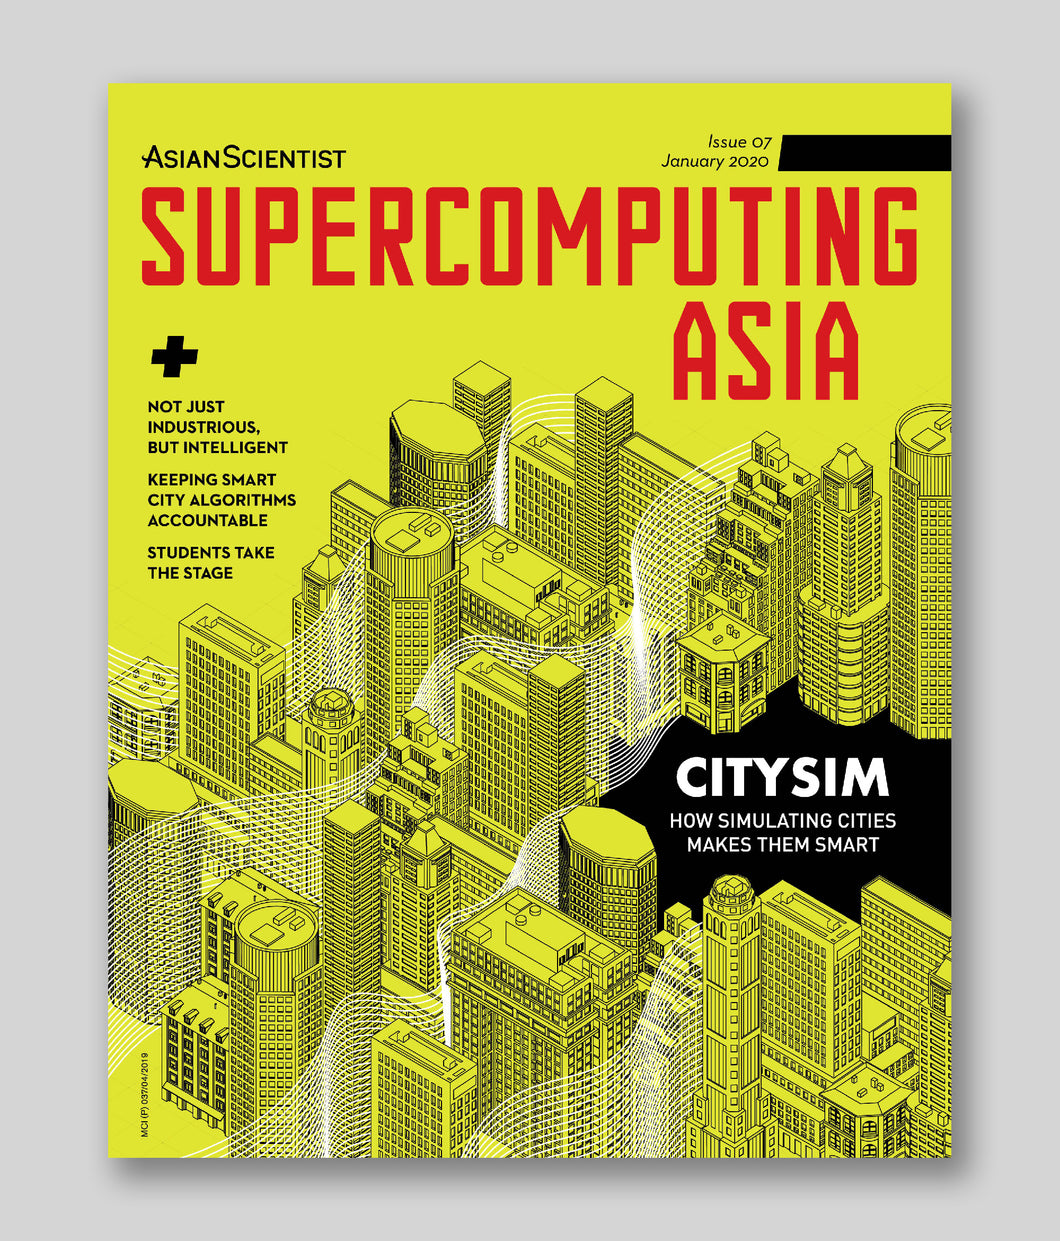 Supercomputing Asia (January 2020)